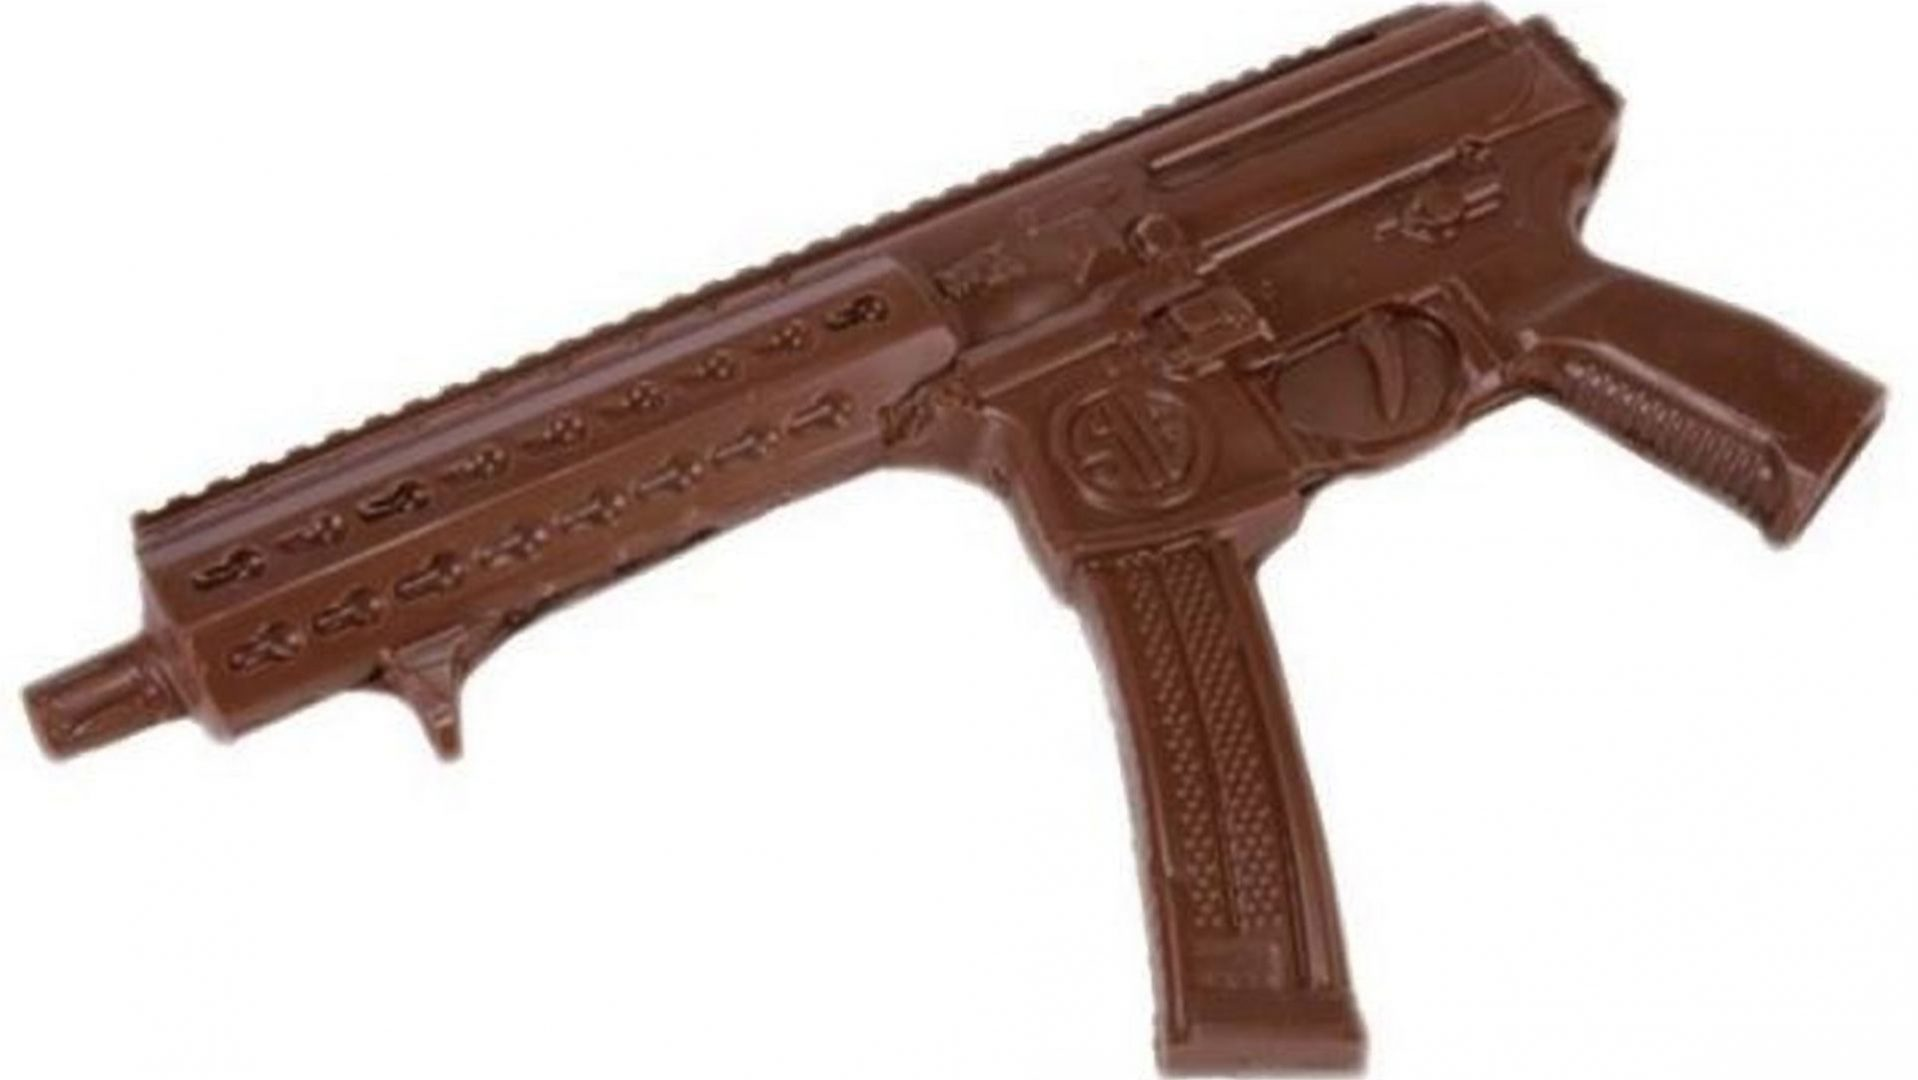 The chocolate machine gun.